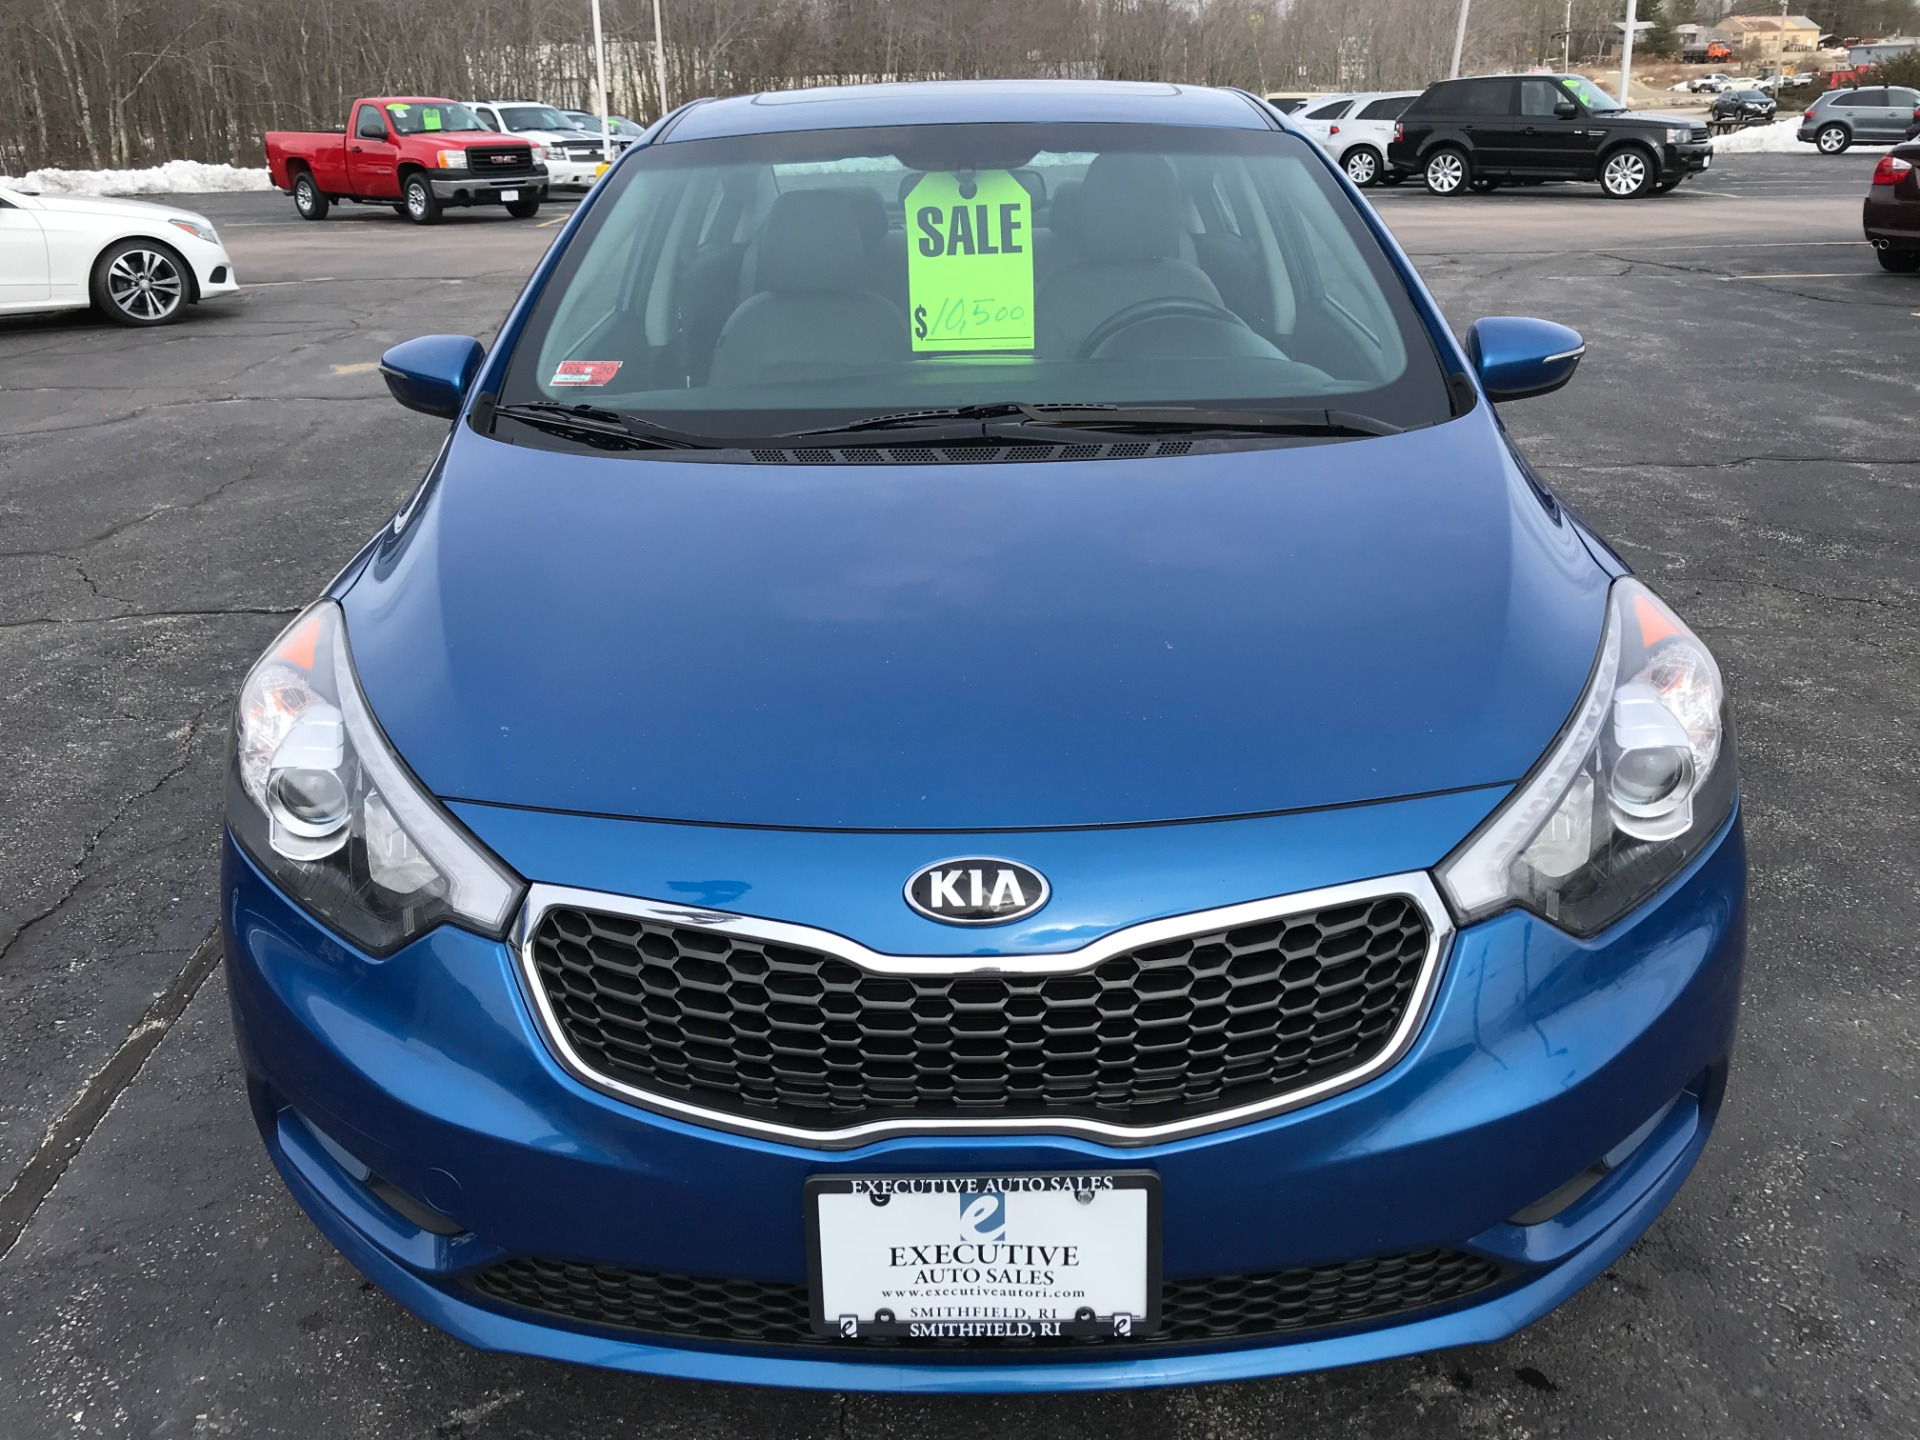 reviews kia dealer my page dealership default texas near customer huffines location testimonials mckinney ytee